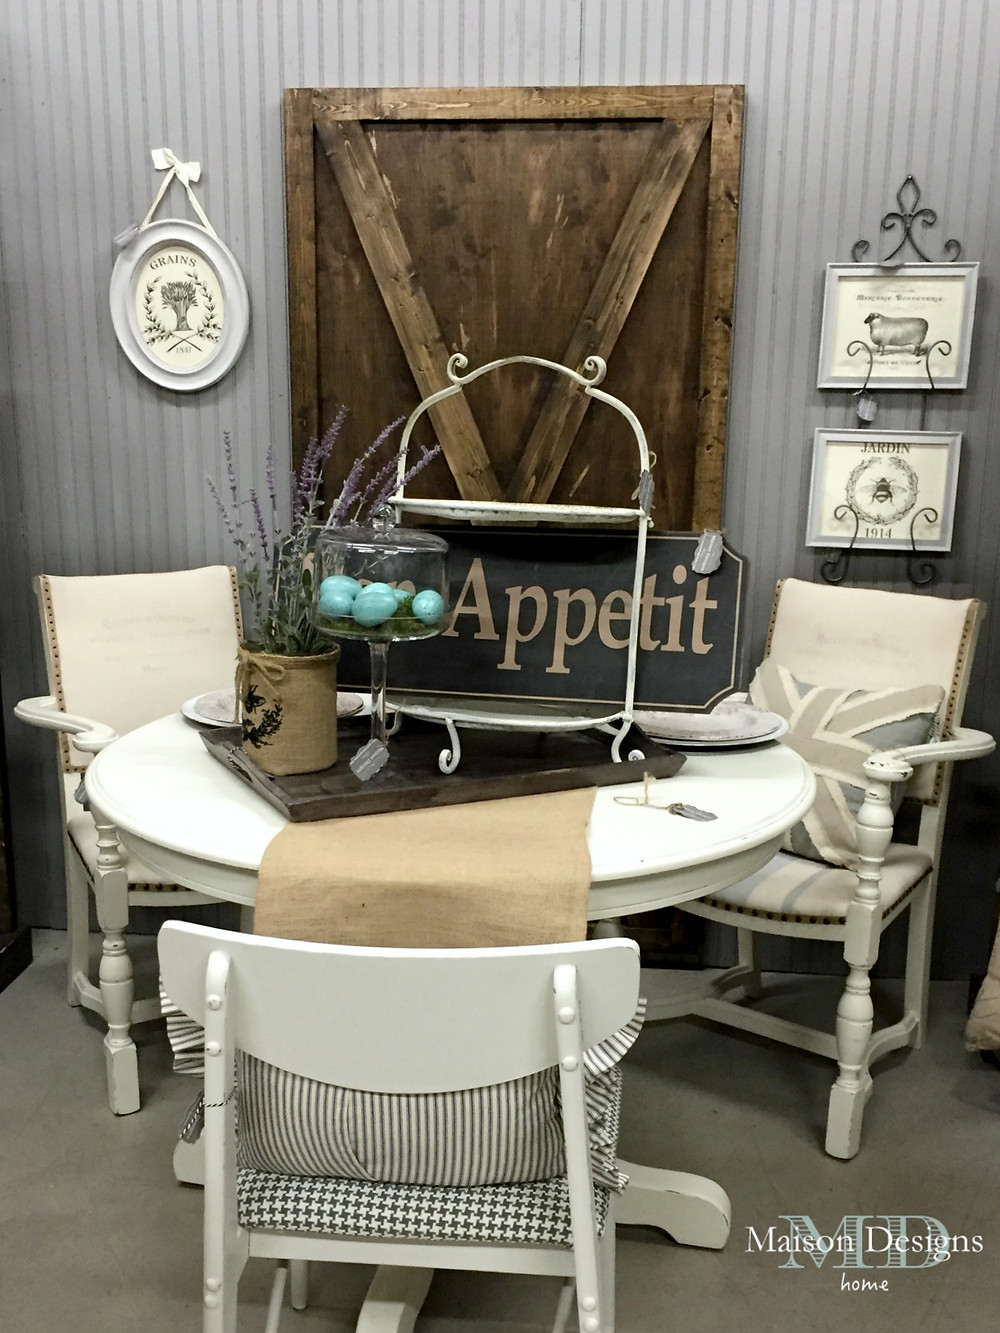 French Country Decor ~ Maison Designs Home